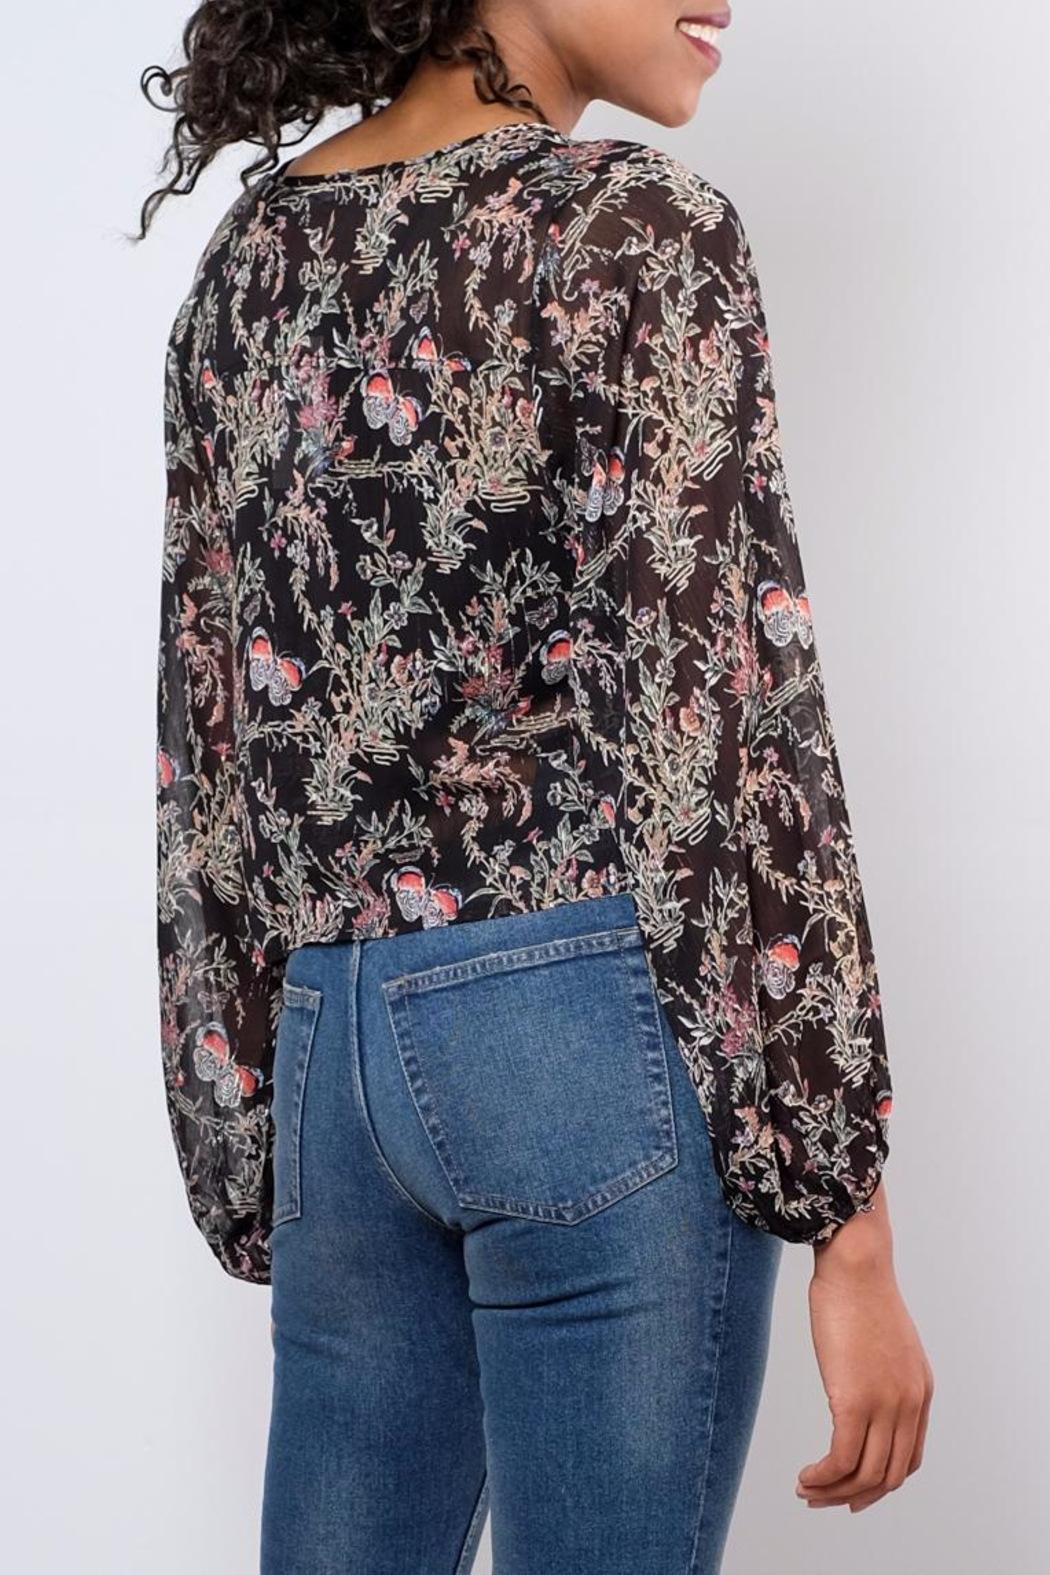 LoveRiche Sheer Printed Top - Side Cropped Image